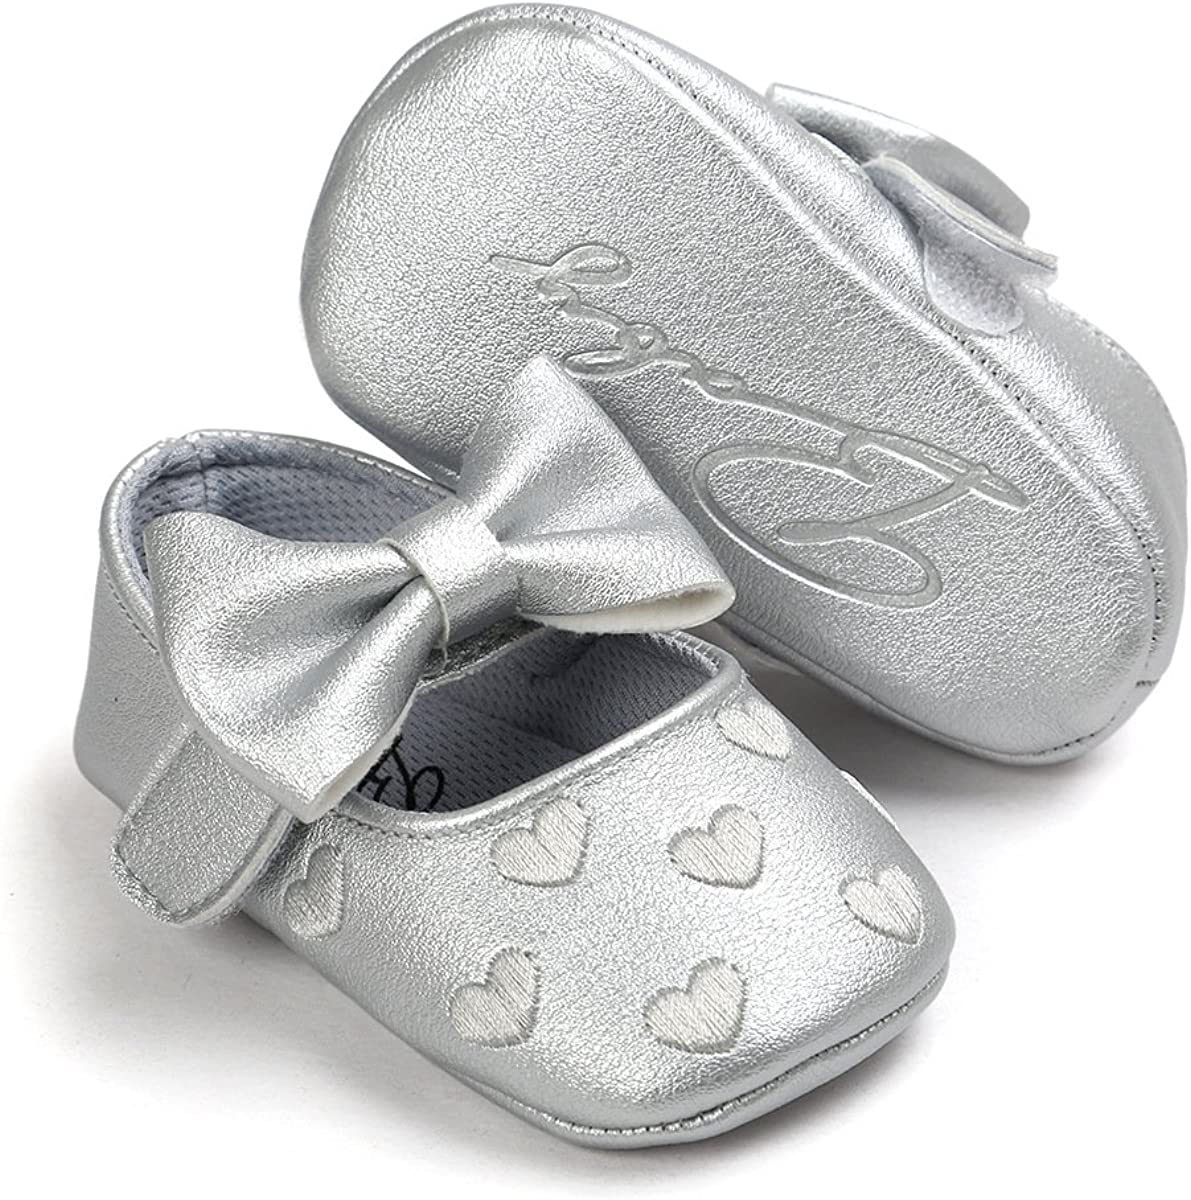 2pcs//Set Newborn Baby Girl Princess Mary Jane Shoes Toddler Infant Wedding Dress Flat Shoes with Free Headband